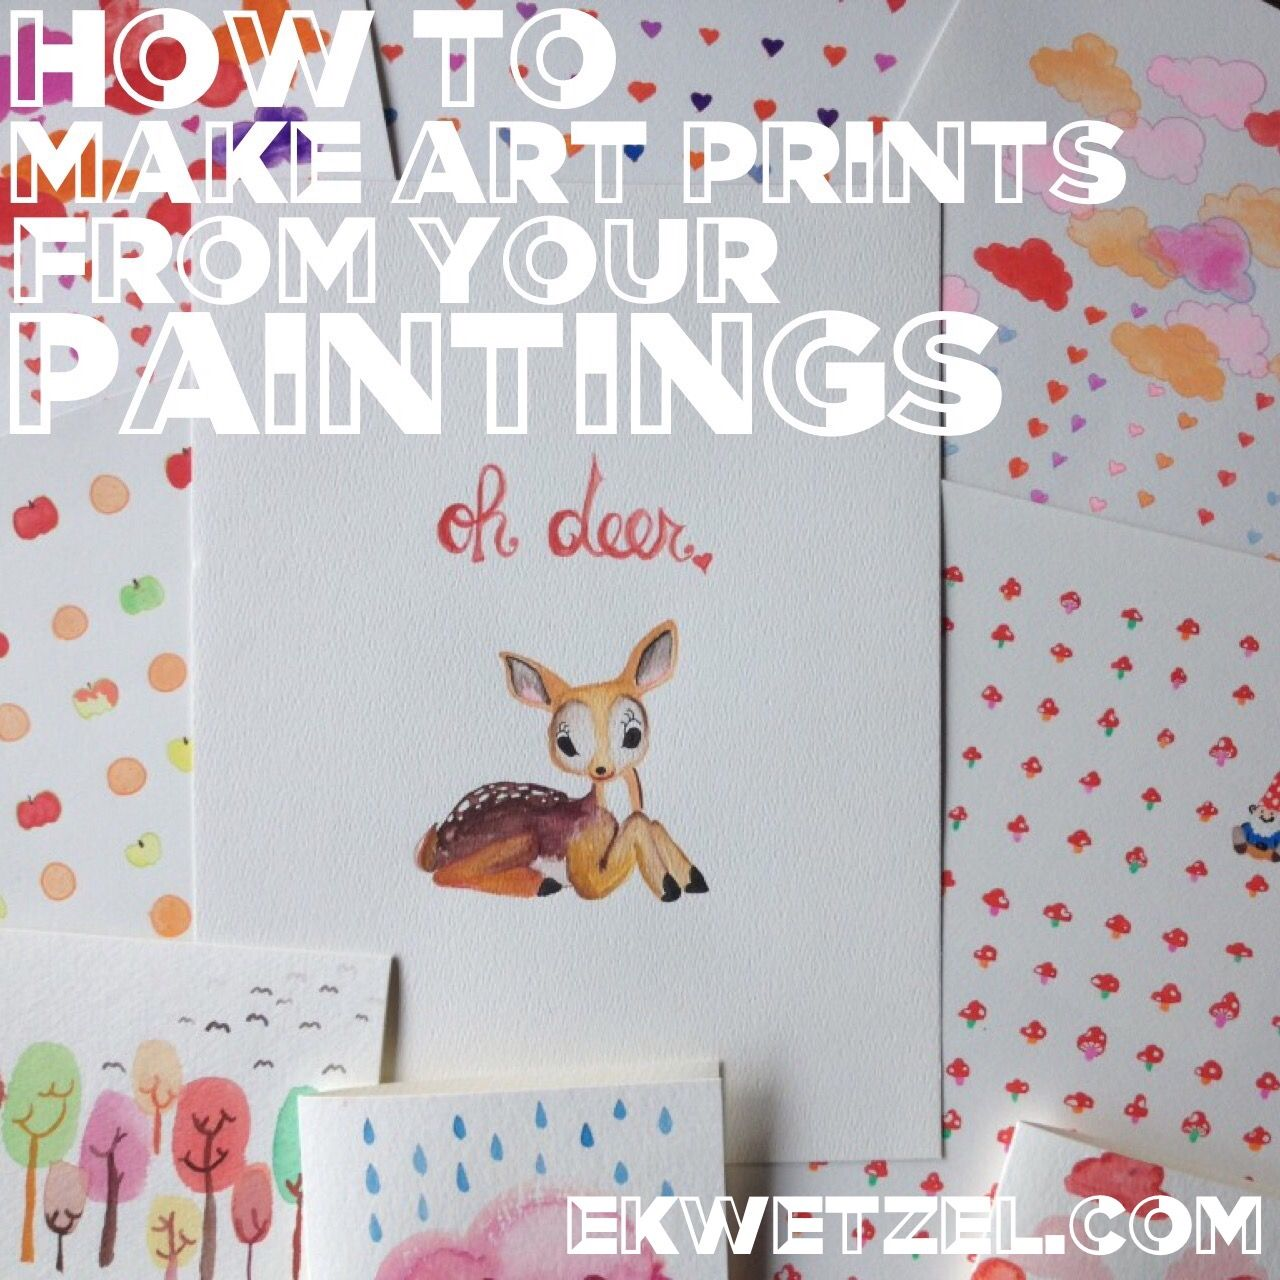 How To Make Prints From Your Paintings Drawings Finally A Simple